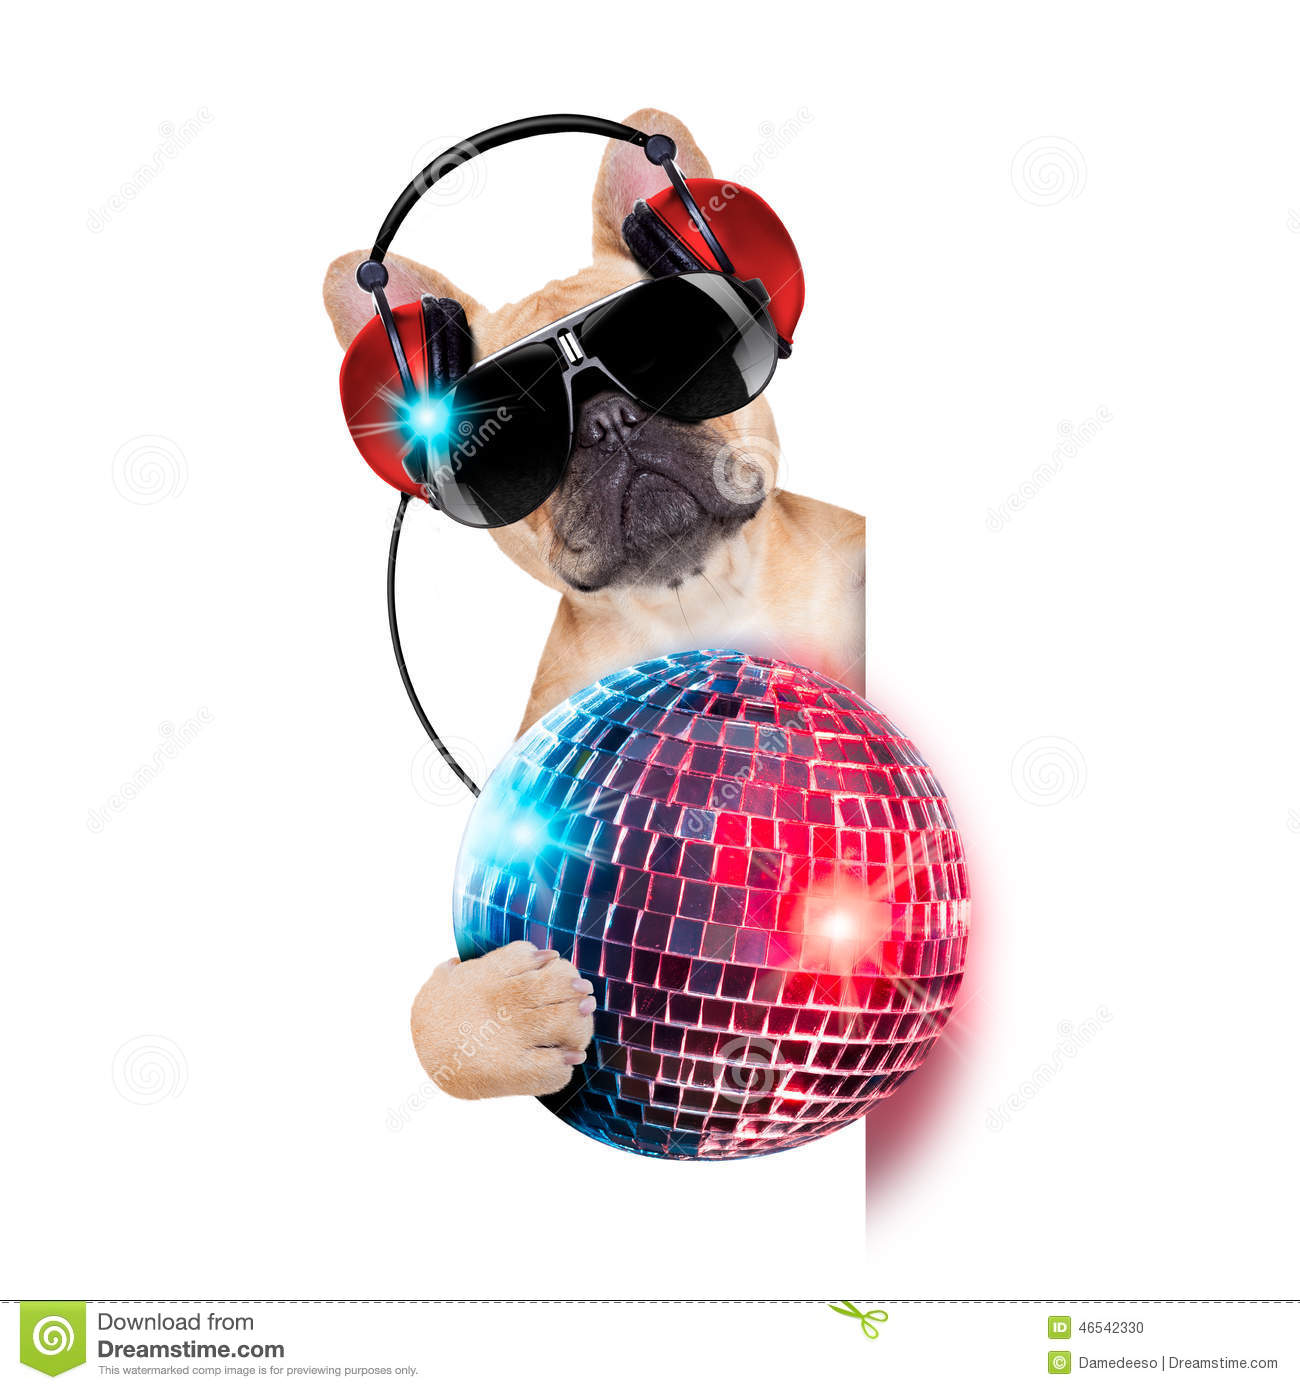 Dj bulldog dog with headphones listening to music holding a disco ball ...